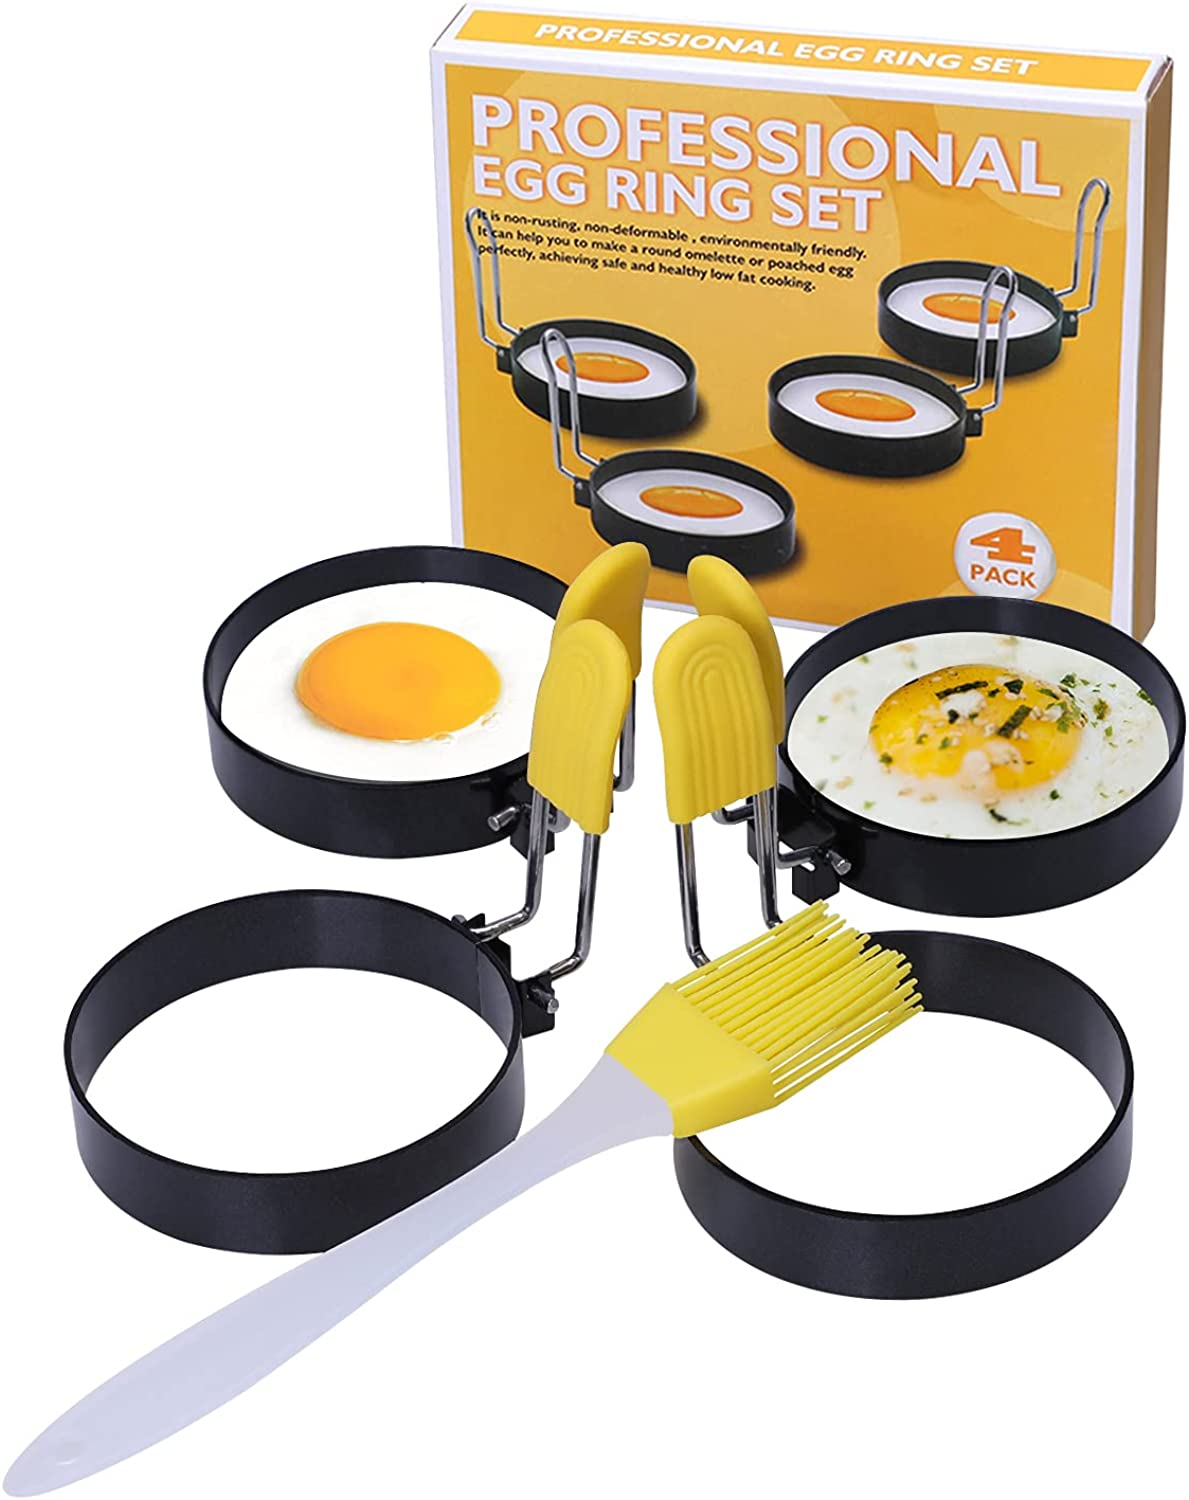 LEASEN Egg Rings, 4 Pack 3-Inch Food-grade Non-stick Coating Stainless Steel Pancake Mold with Anti-scald Silicone Handle, Used for Egg Mcmuffin, Sandwich, Frying Egg, Hamburger, Mini Pancakes, Yellow